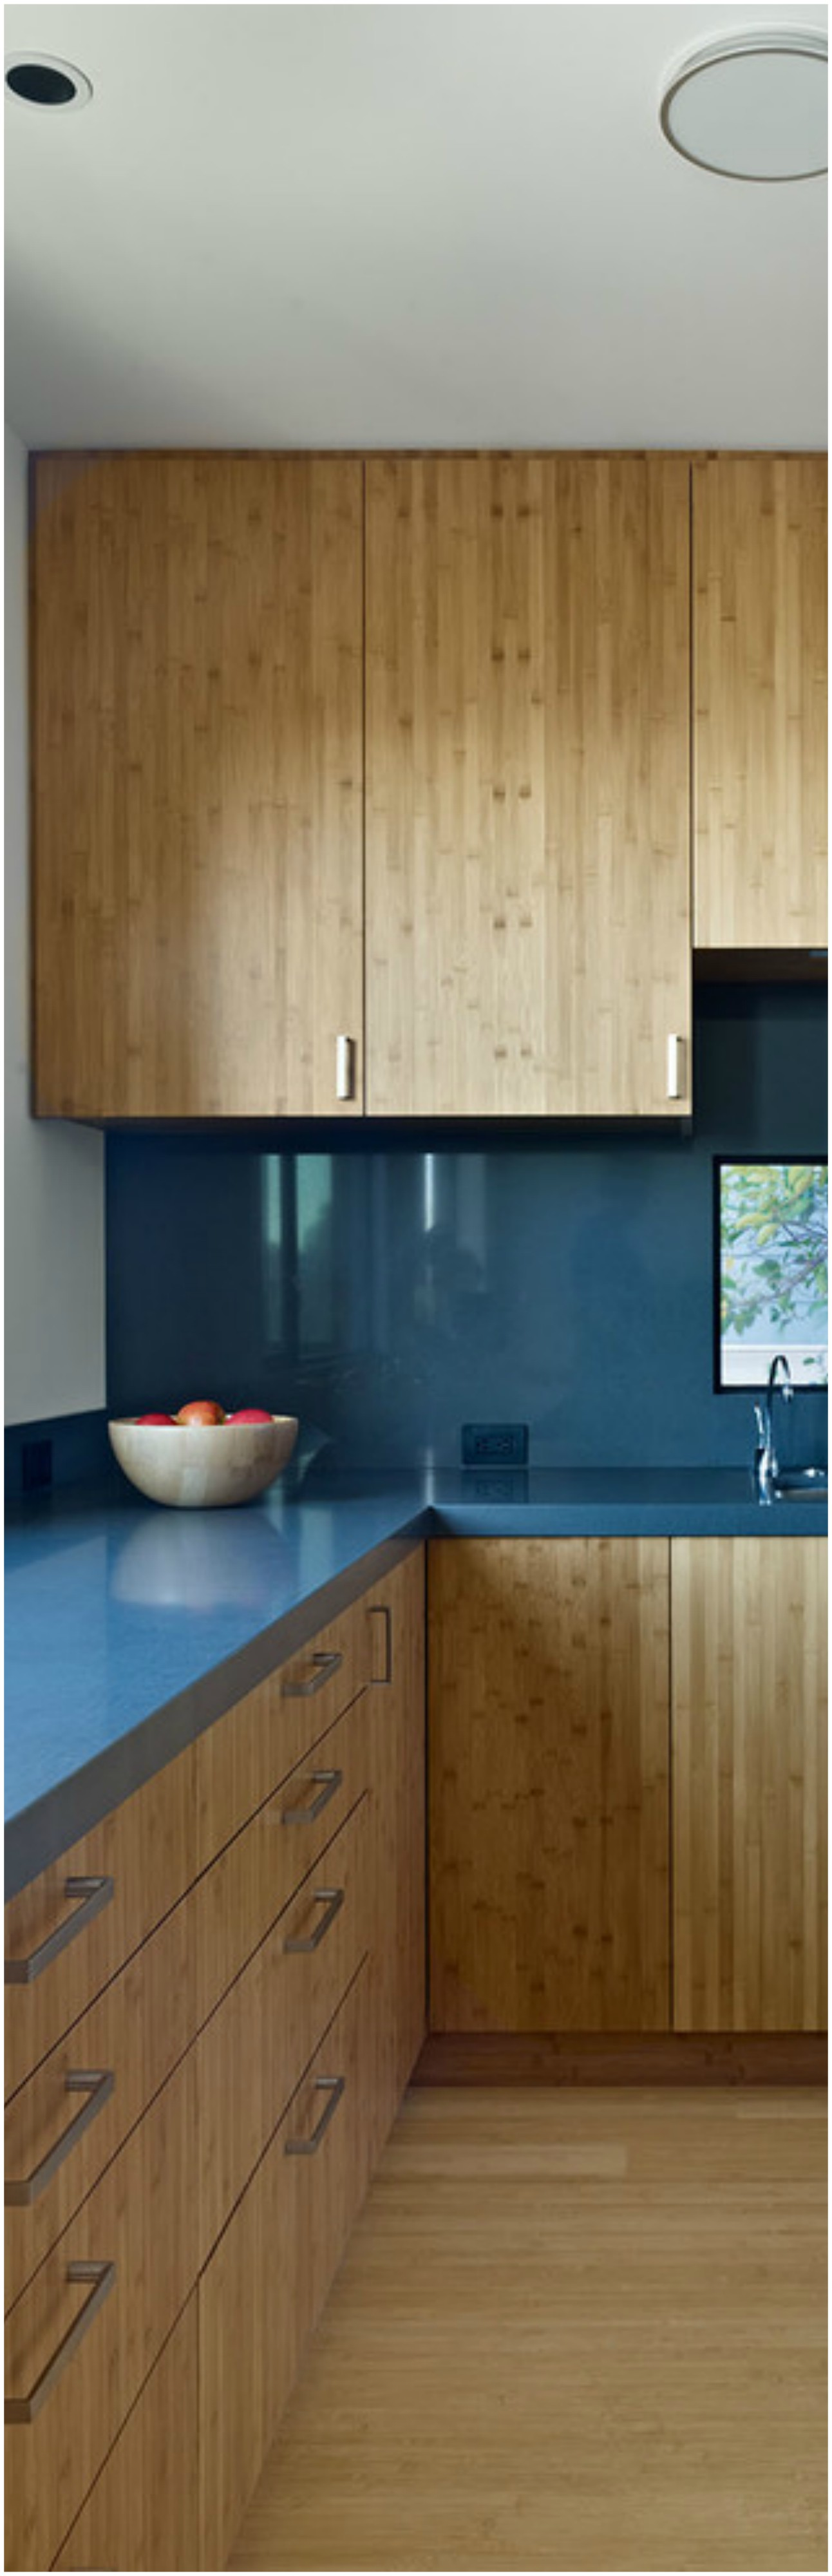 Modern Kitchen with Blue Countertops